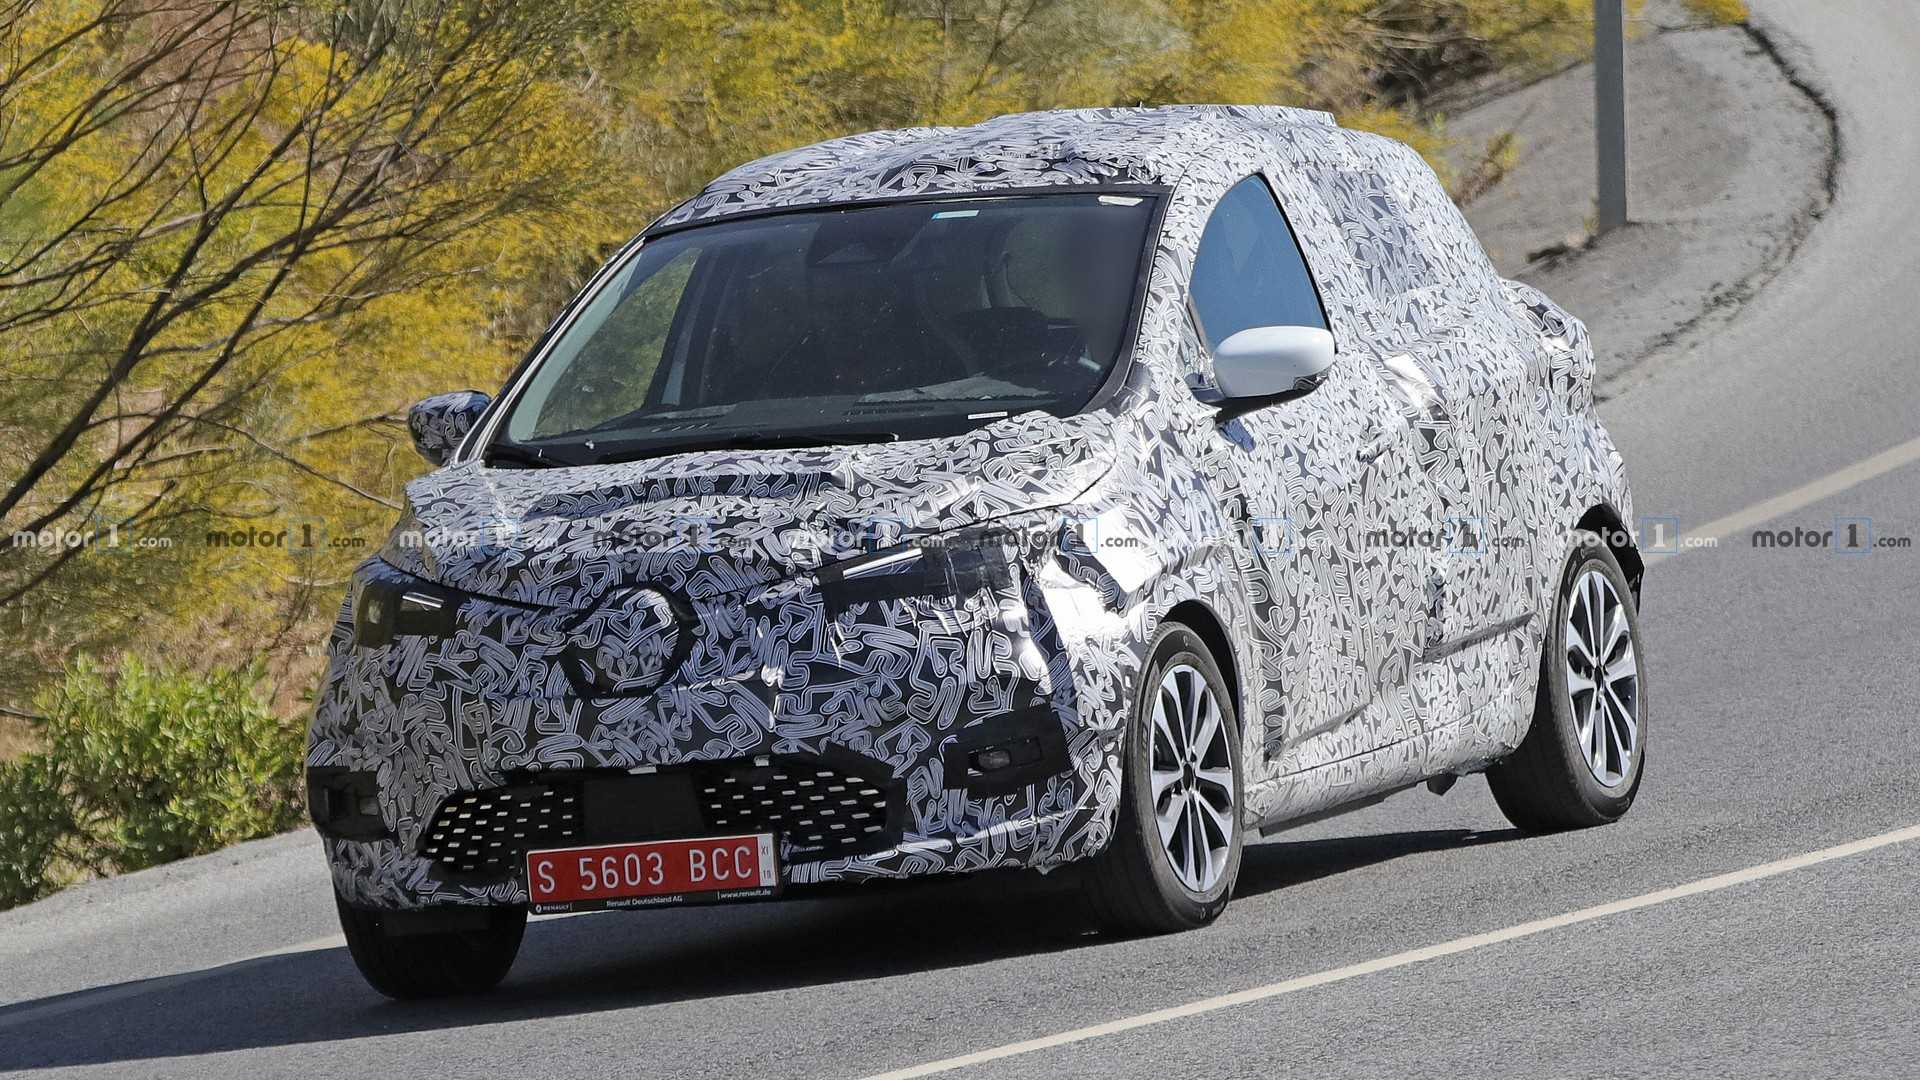 As it turns out, the next-gen Zoe is already underway and should debut sometime closer to the end of 2019 – or the beginning of 2020, for that matter